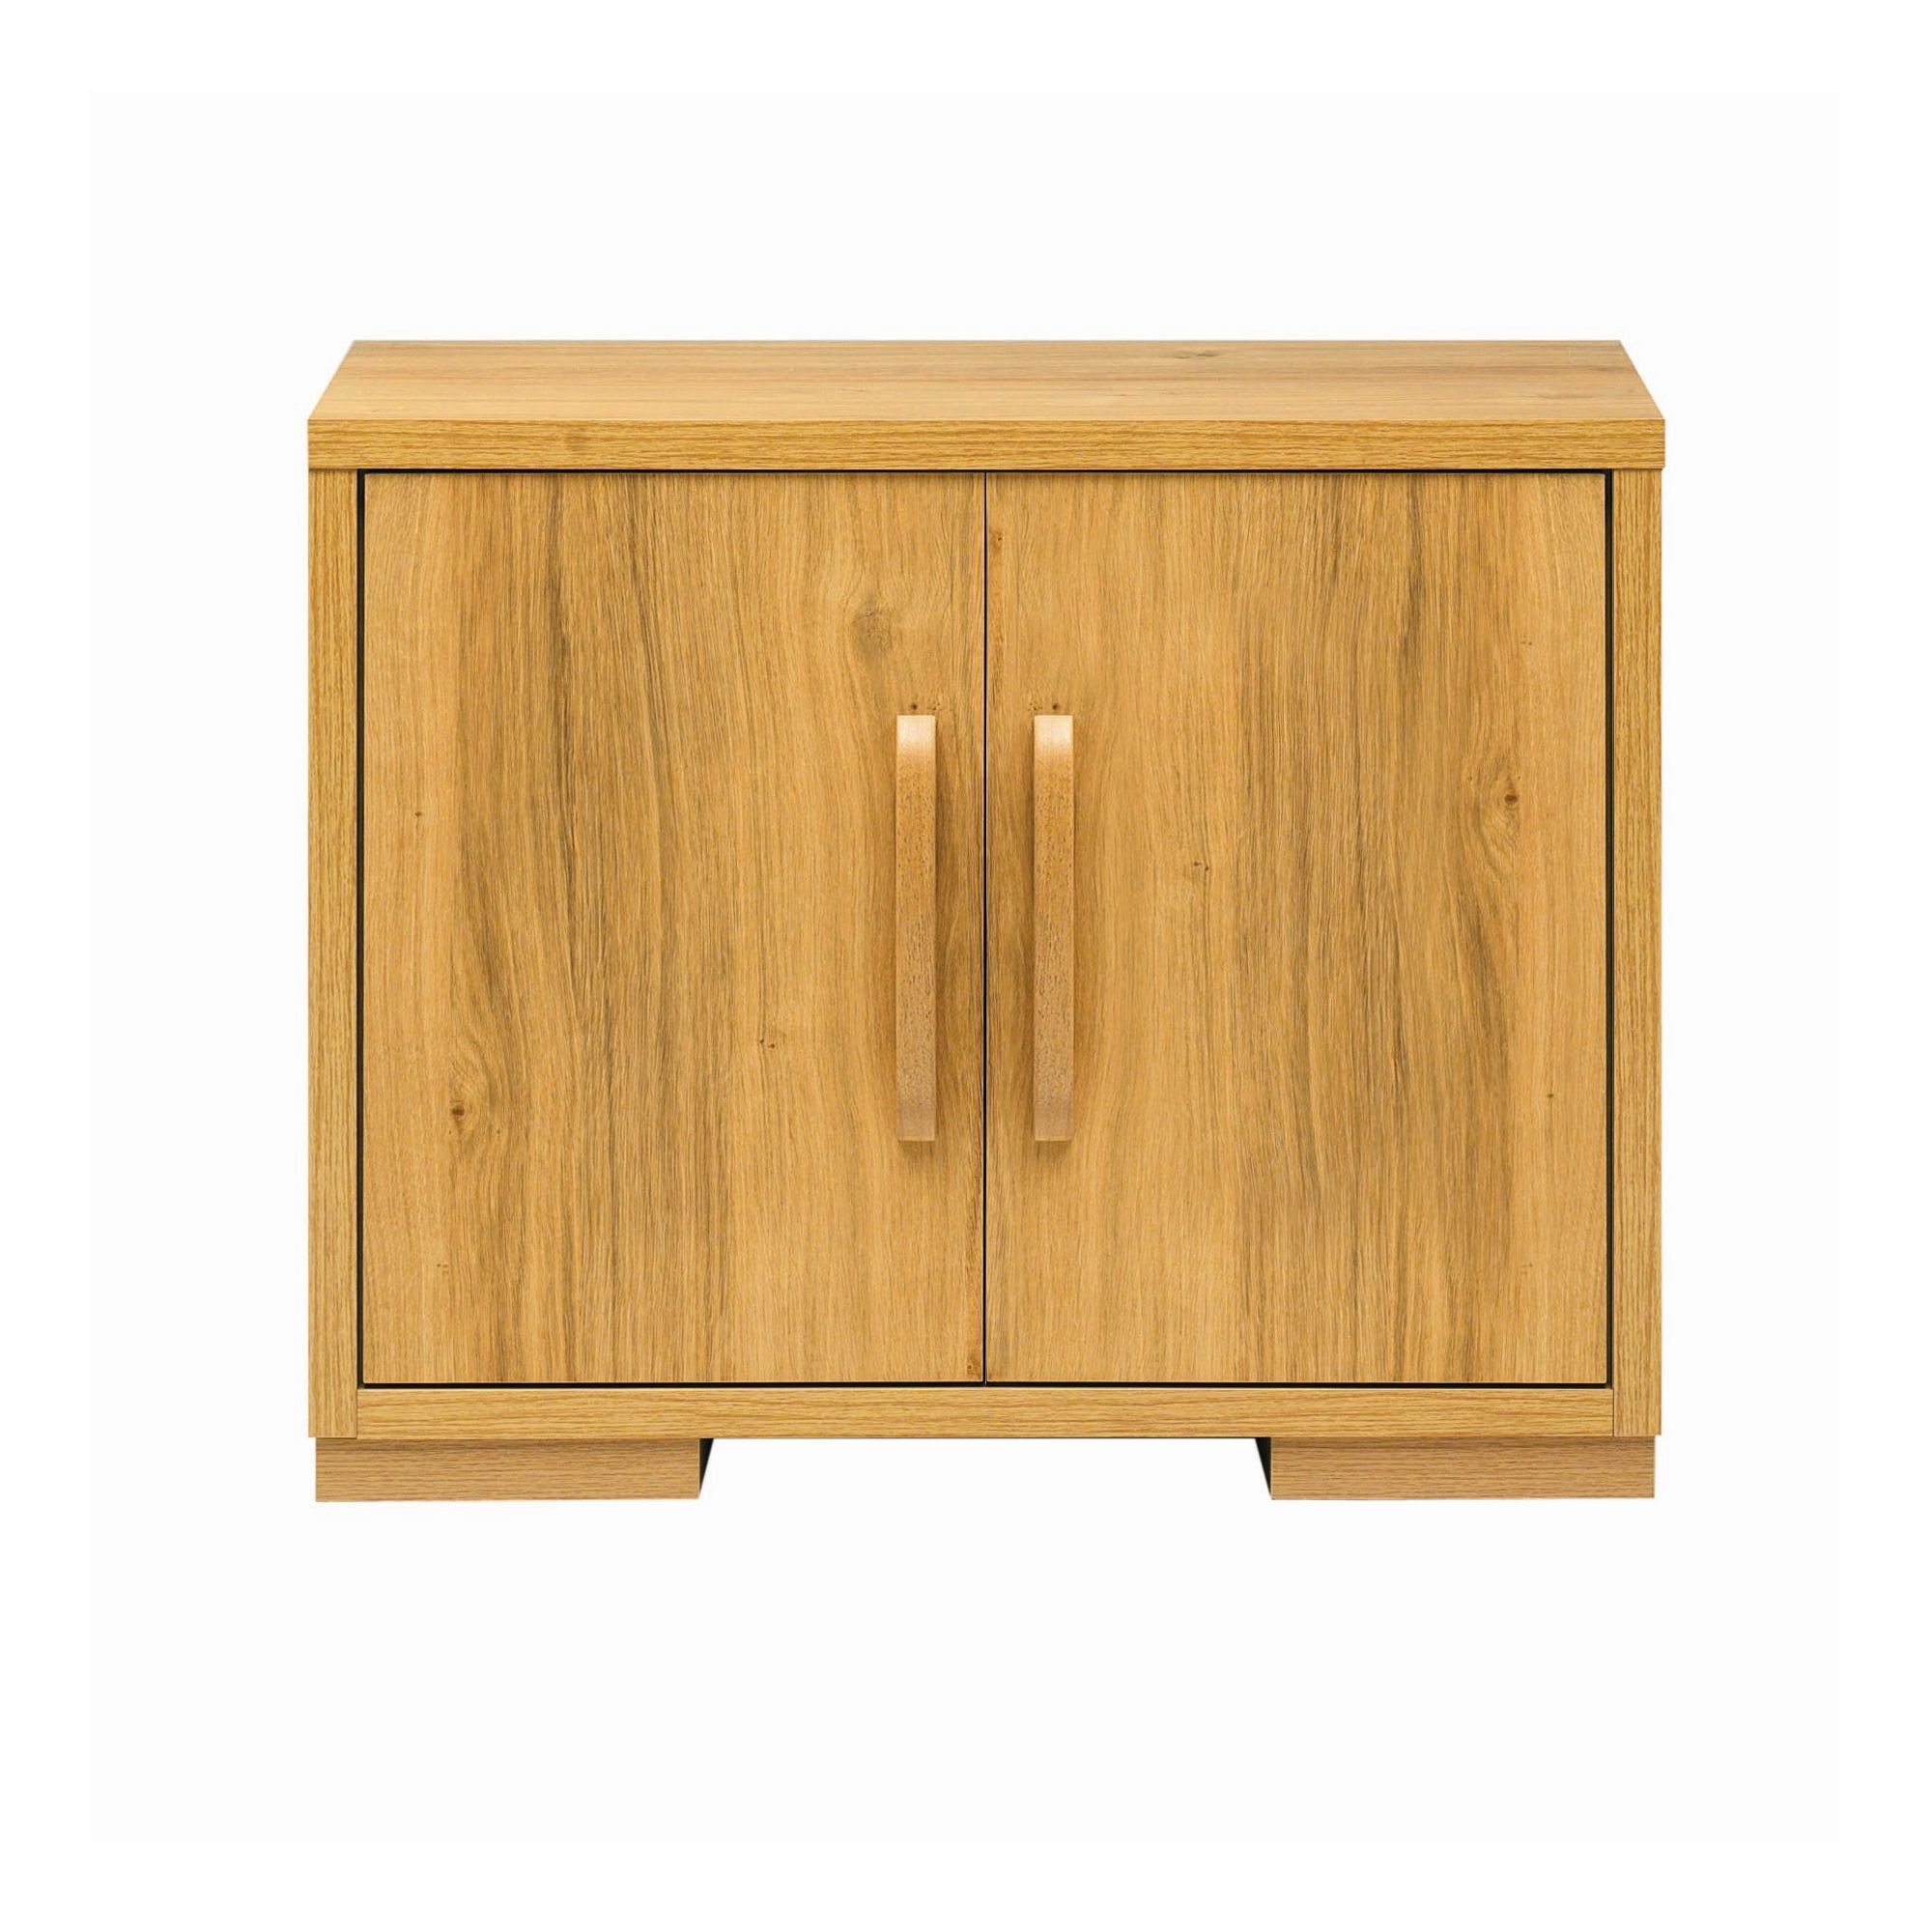 Caxton Strand Two Door Cupboard in Oak at Tesco Direct